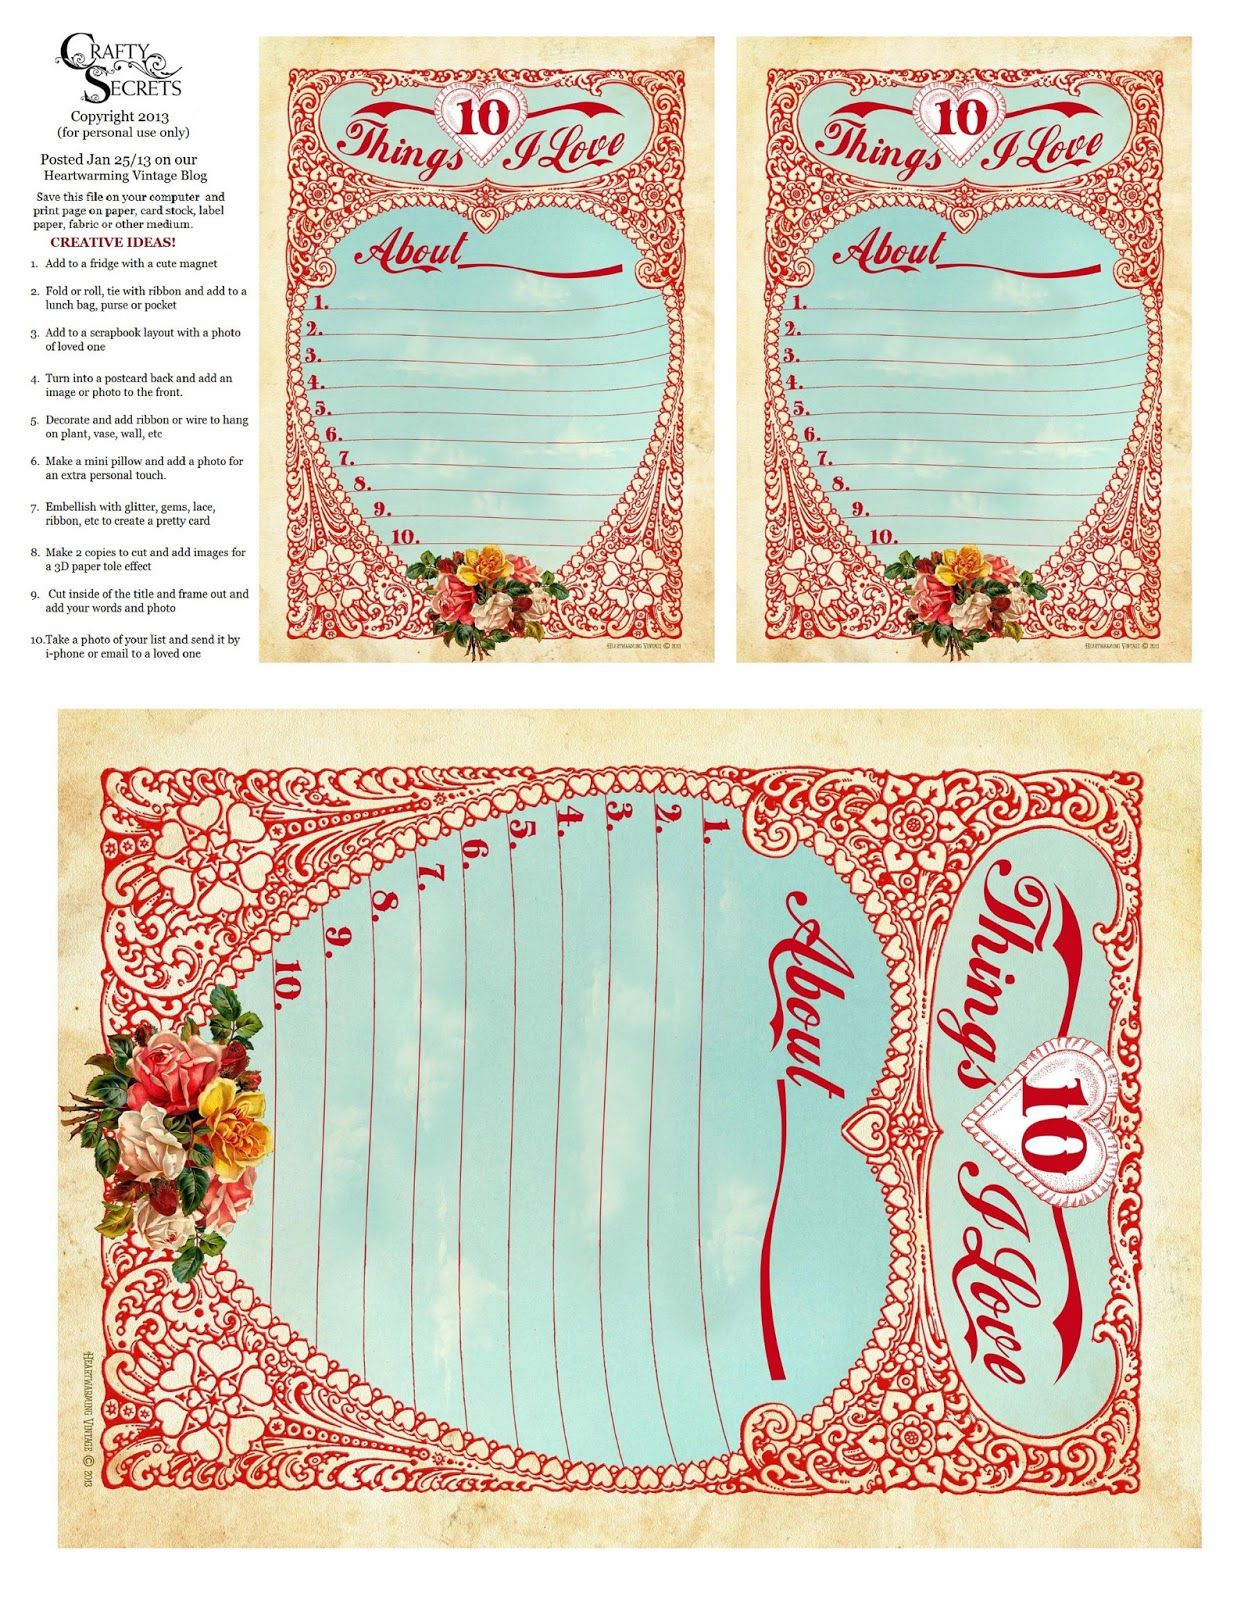 Crafty Secrets Vintage Paper Crafts Stamping Ideas Our Free 10 Things I Love Valentine